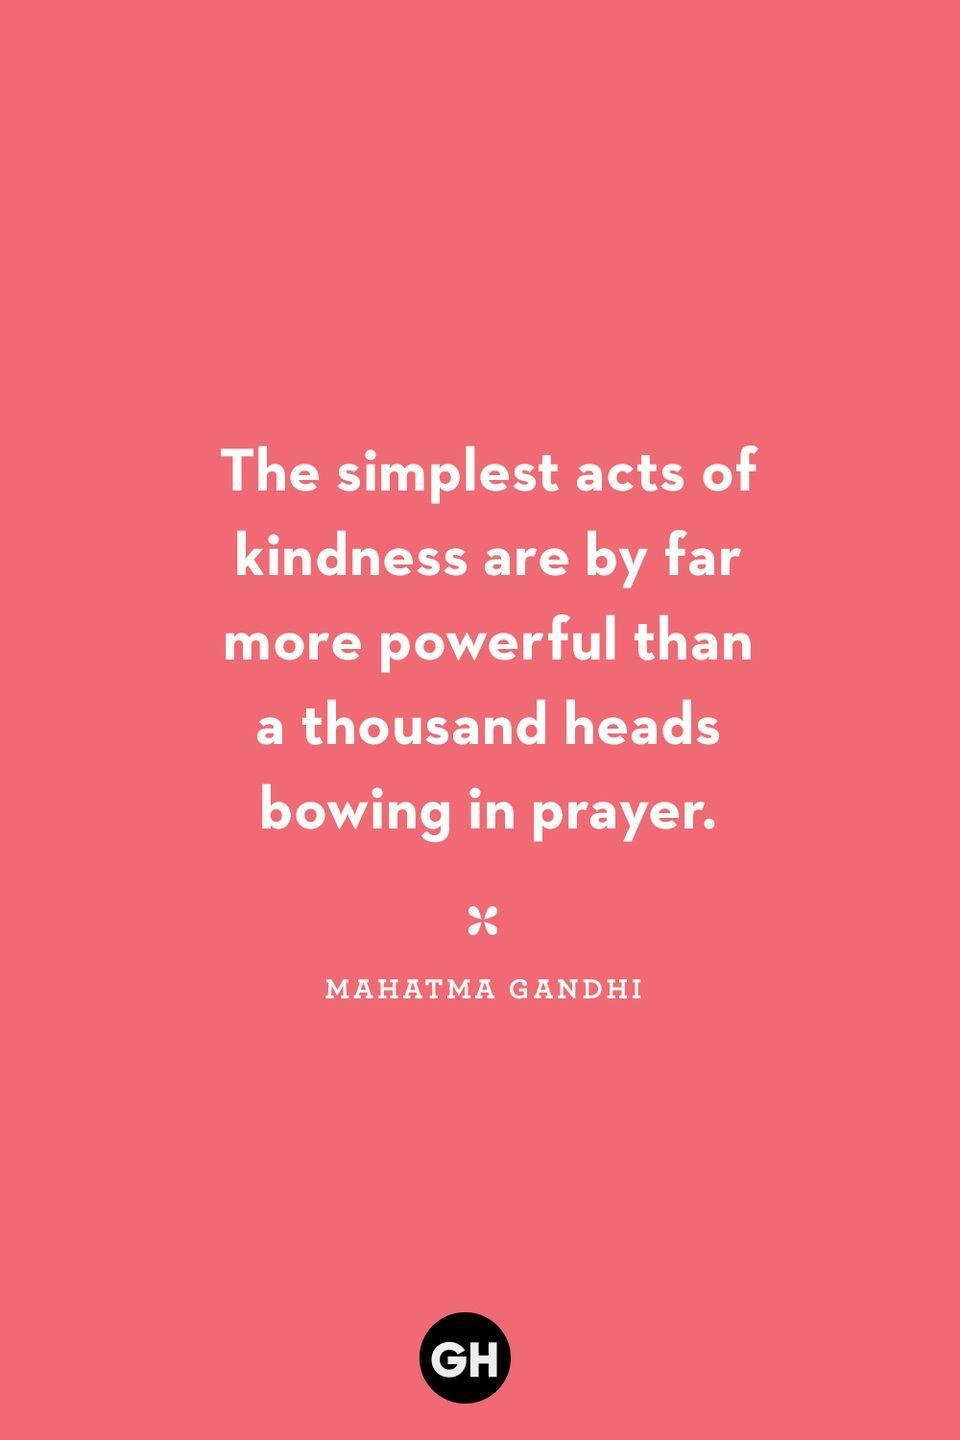 <p>The simplest acts of kindness are by far more powerful than a thousand heads bowing in prayer.</p>